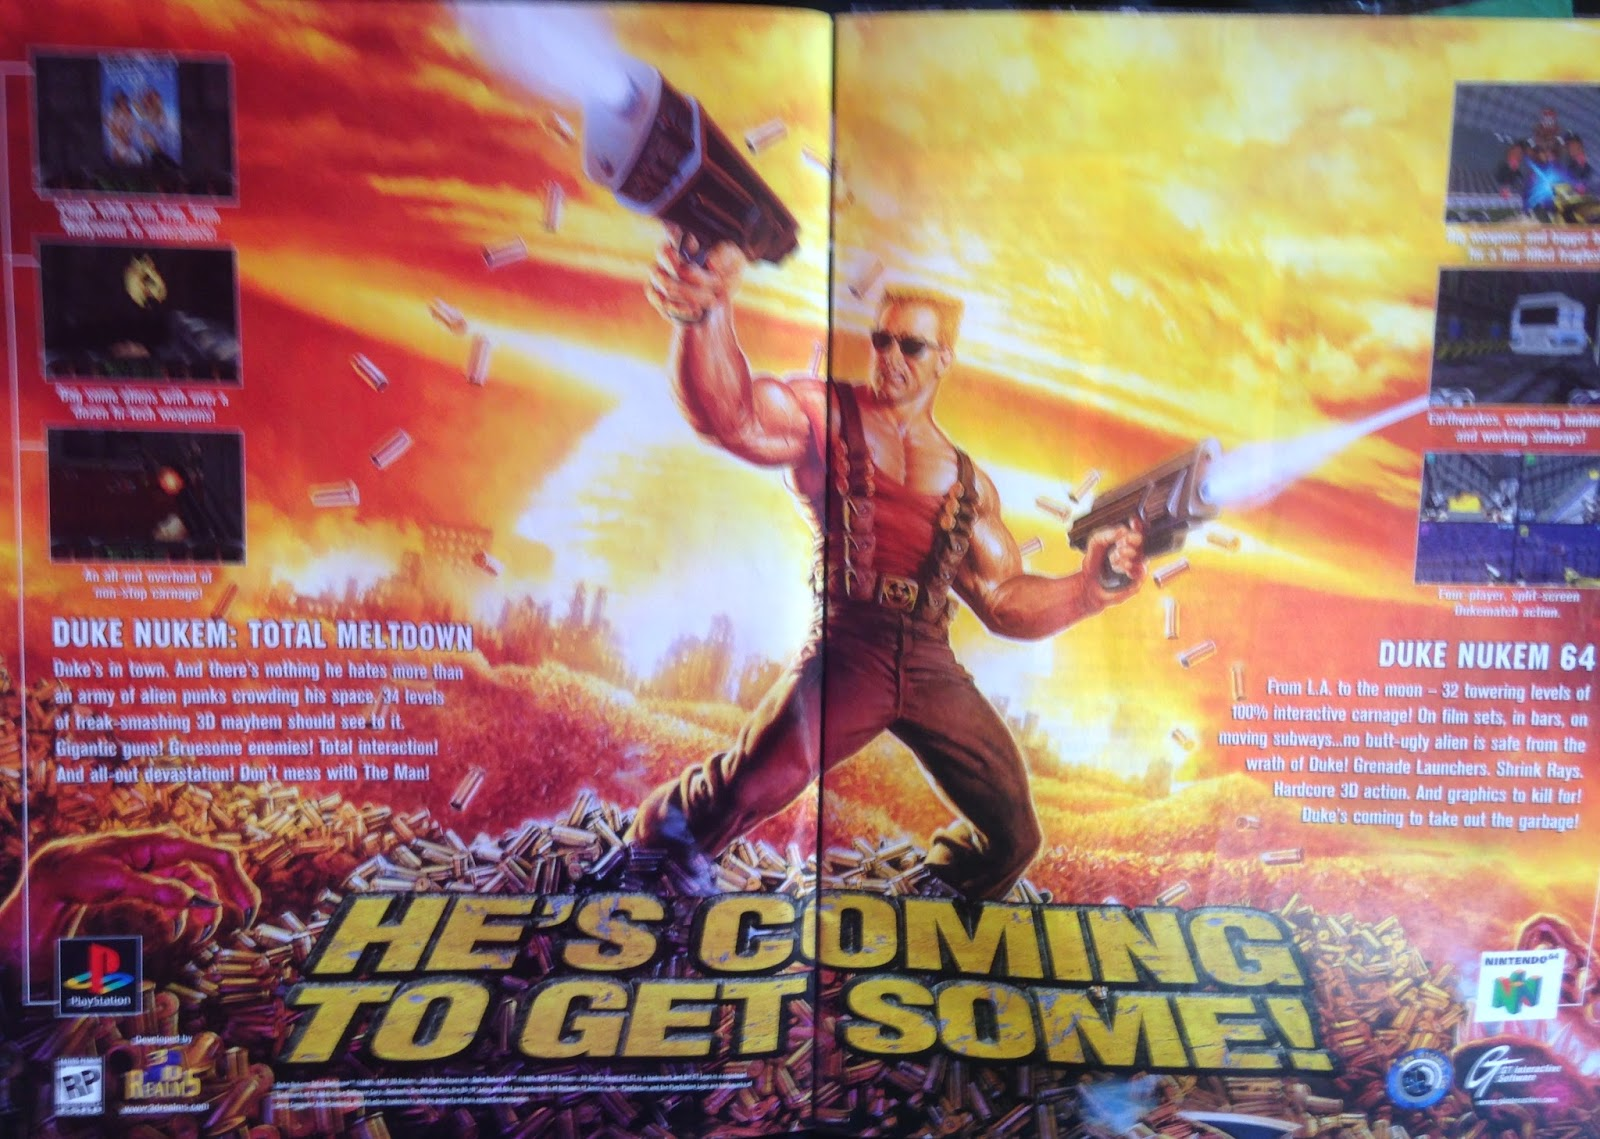 WWF MAGAZINE - JANUARY 1998 -  Duke Nukem game advert